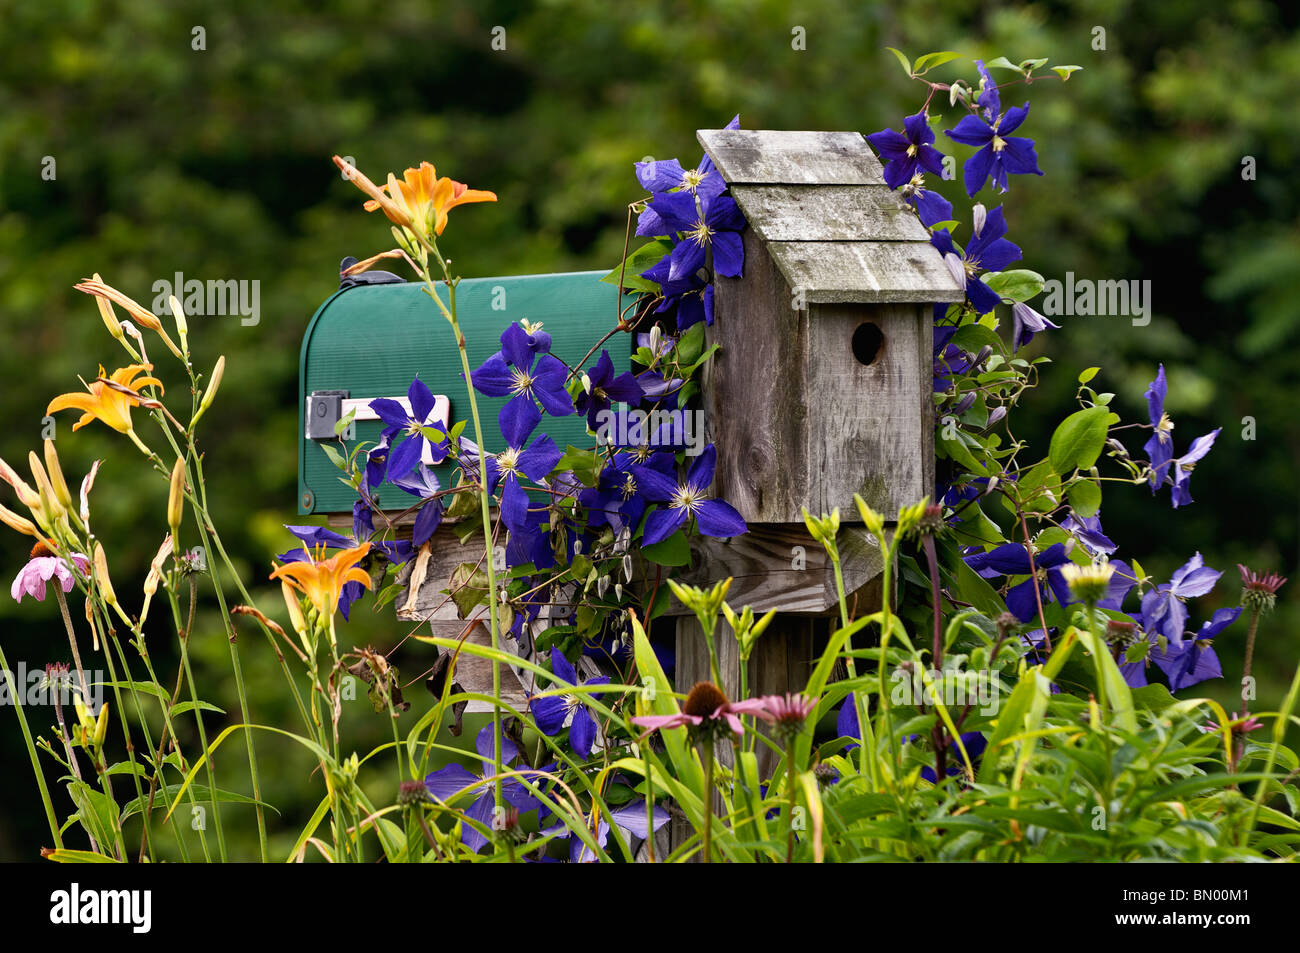 Mailbox, Birdhouse and Garden Flowers in Floyds Knobs, Indiana - Stock Image